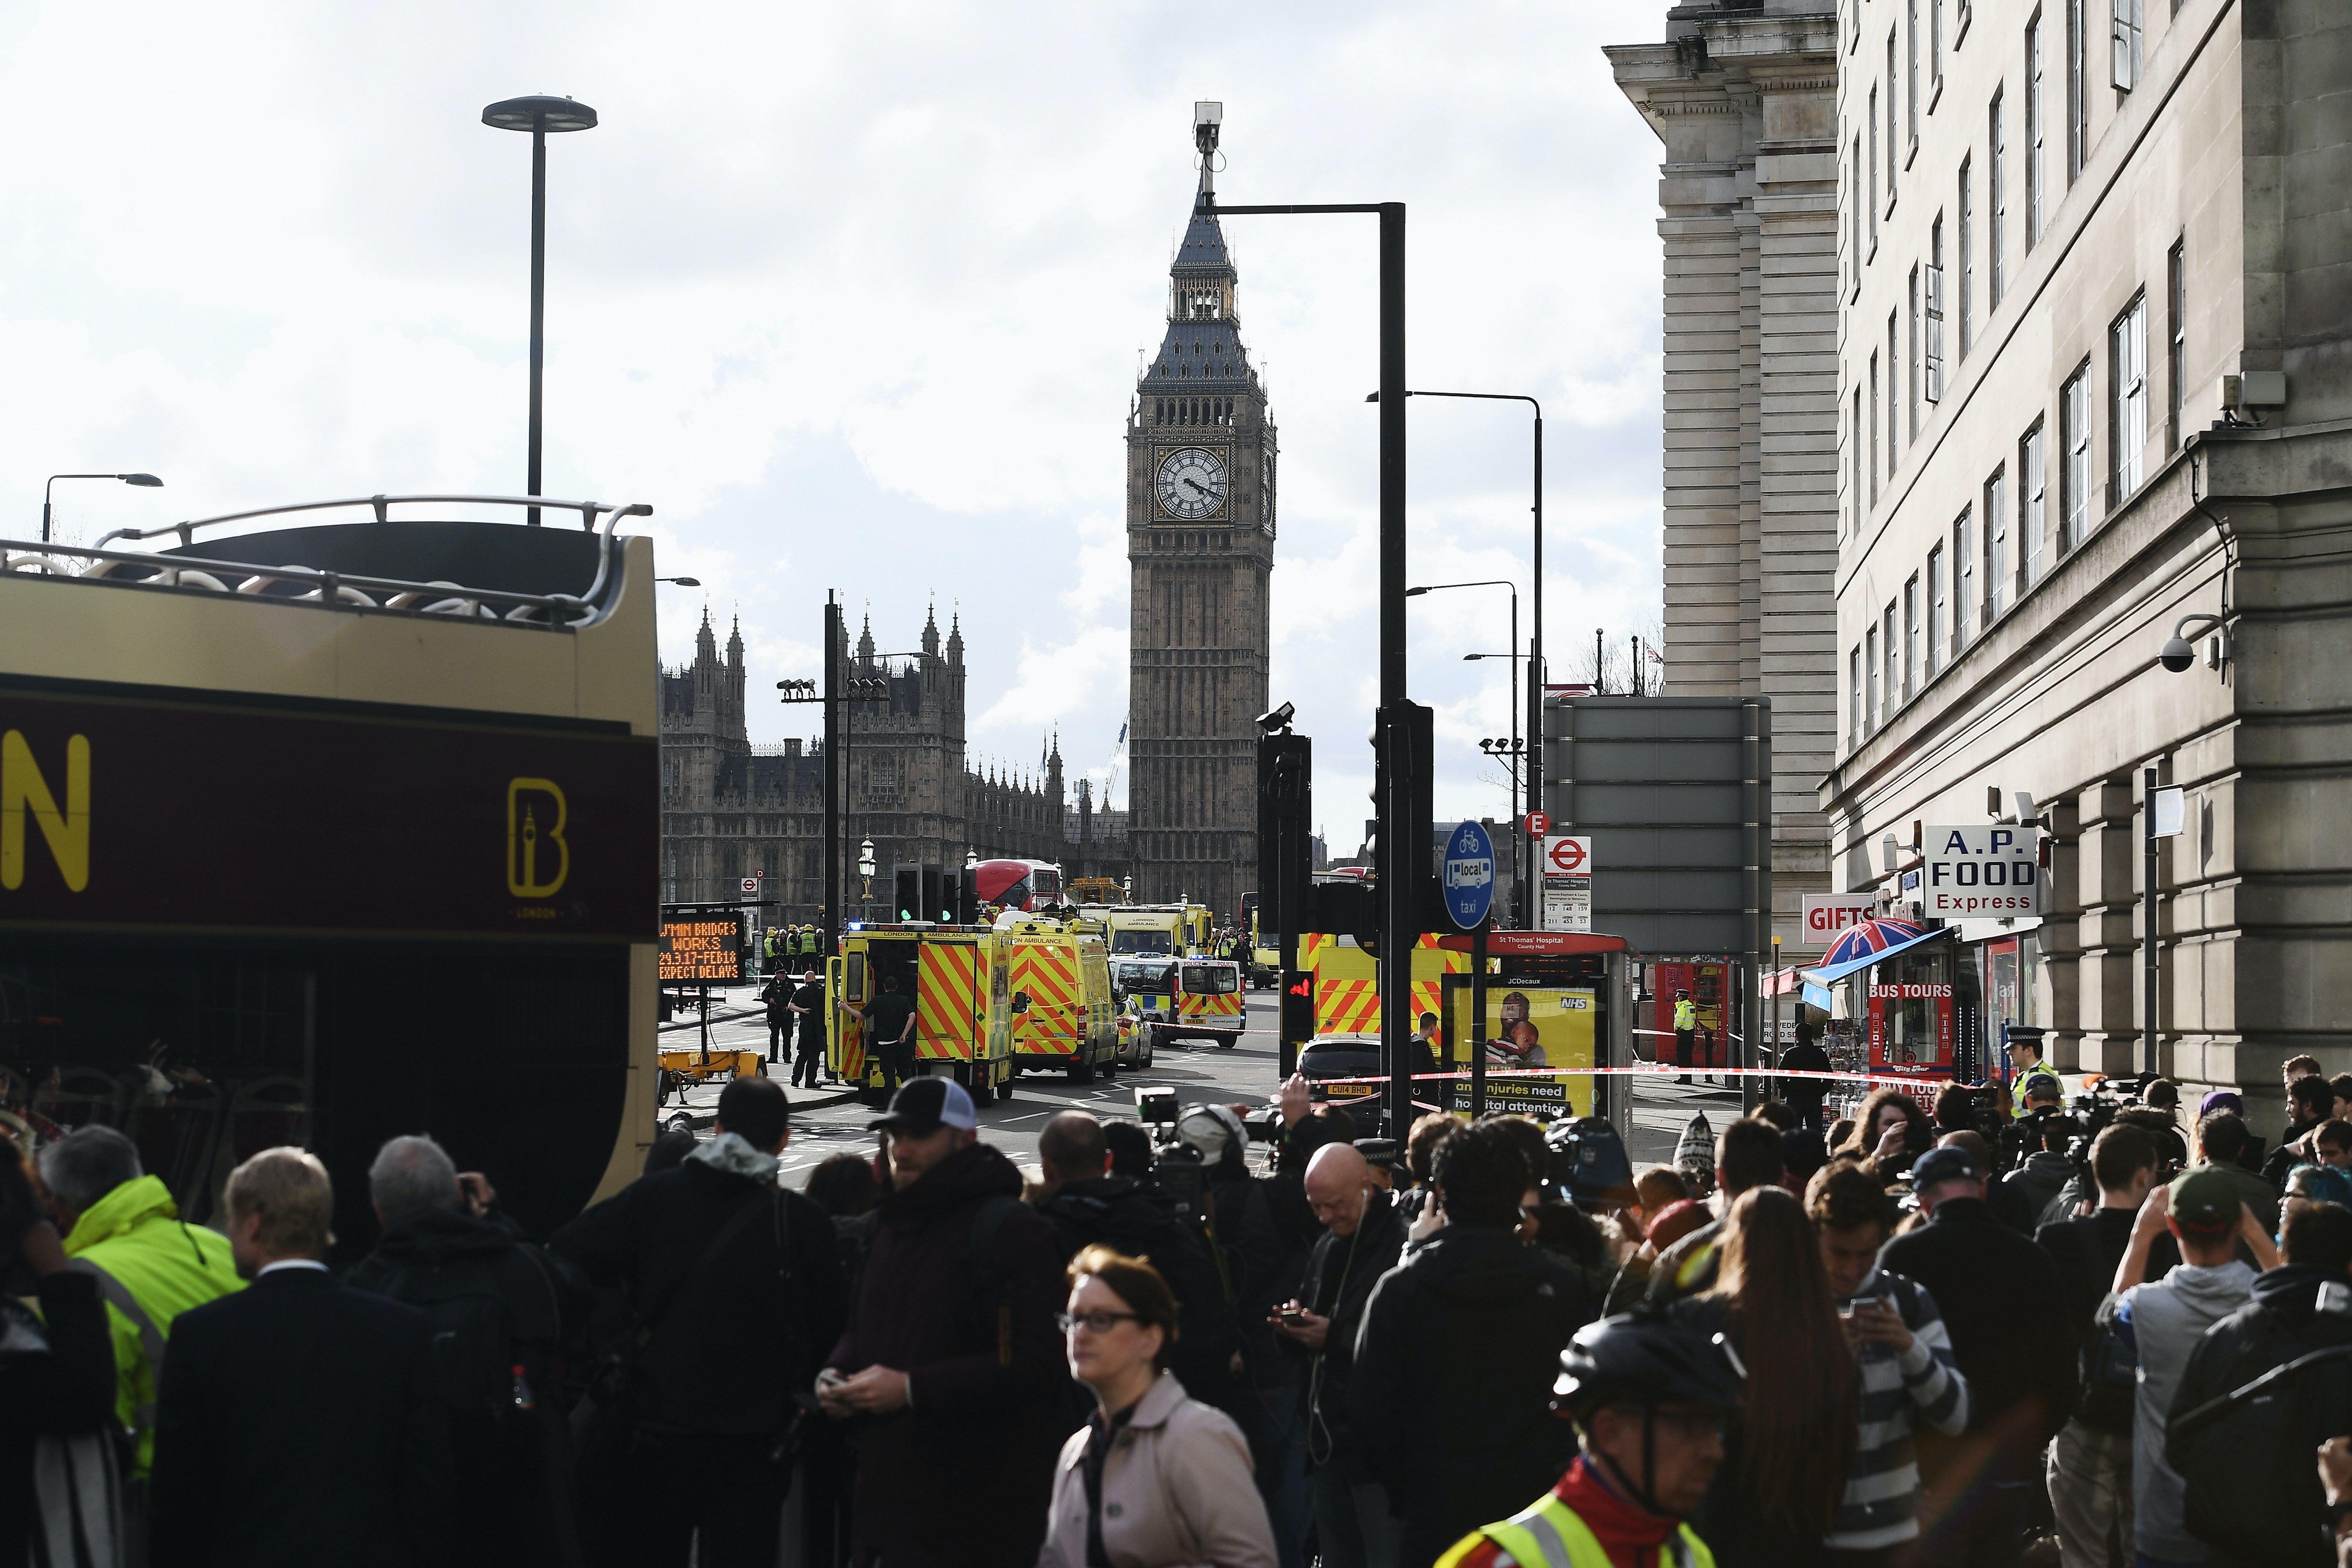 PM Modi condemns London 'terror attack', says India stands by UK